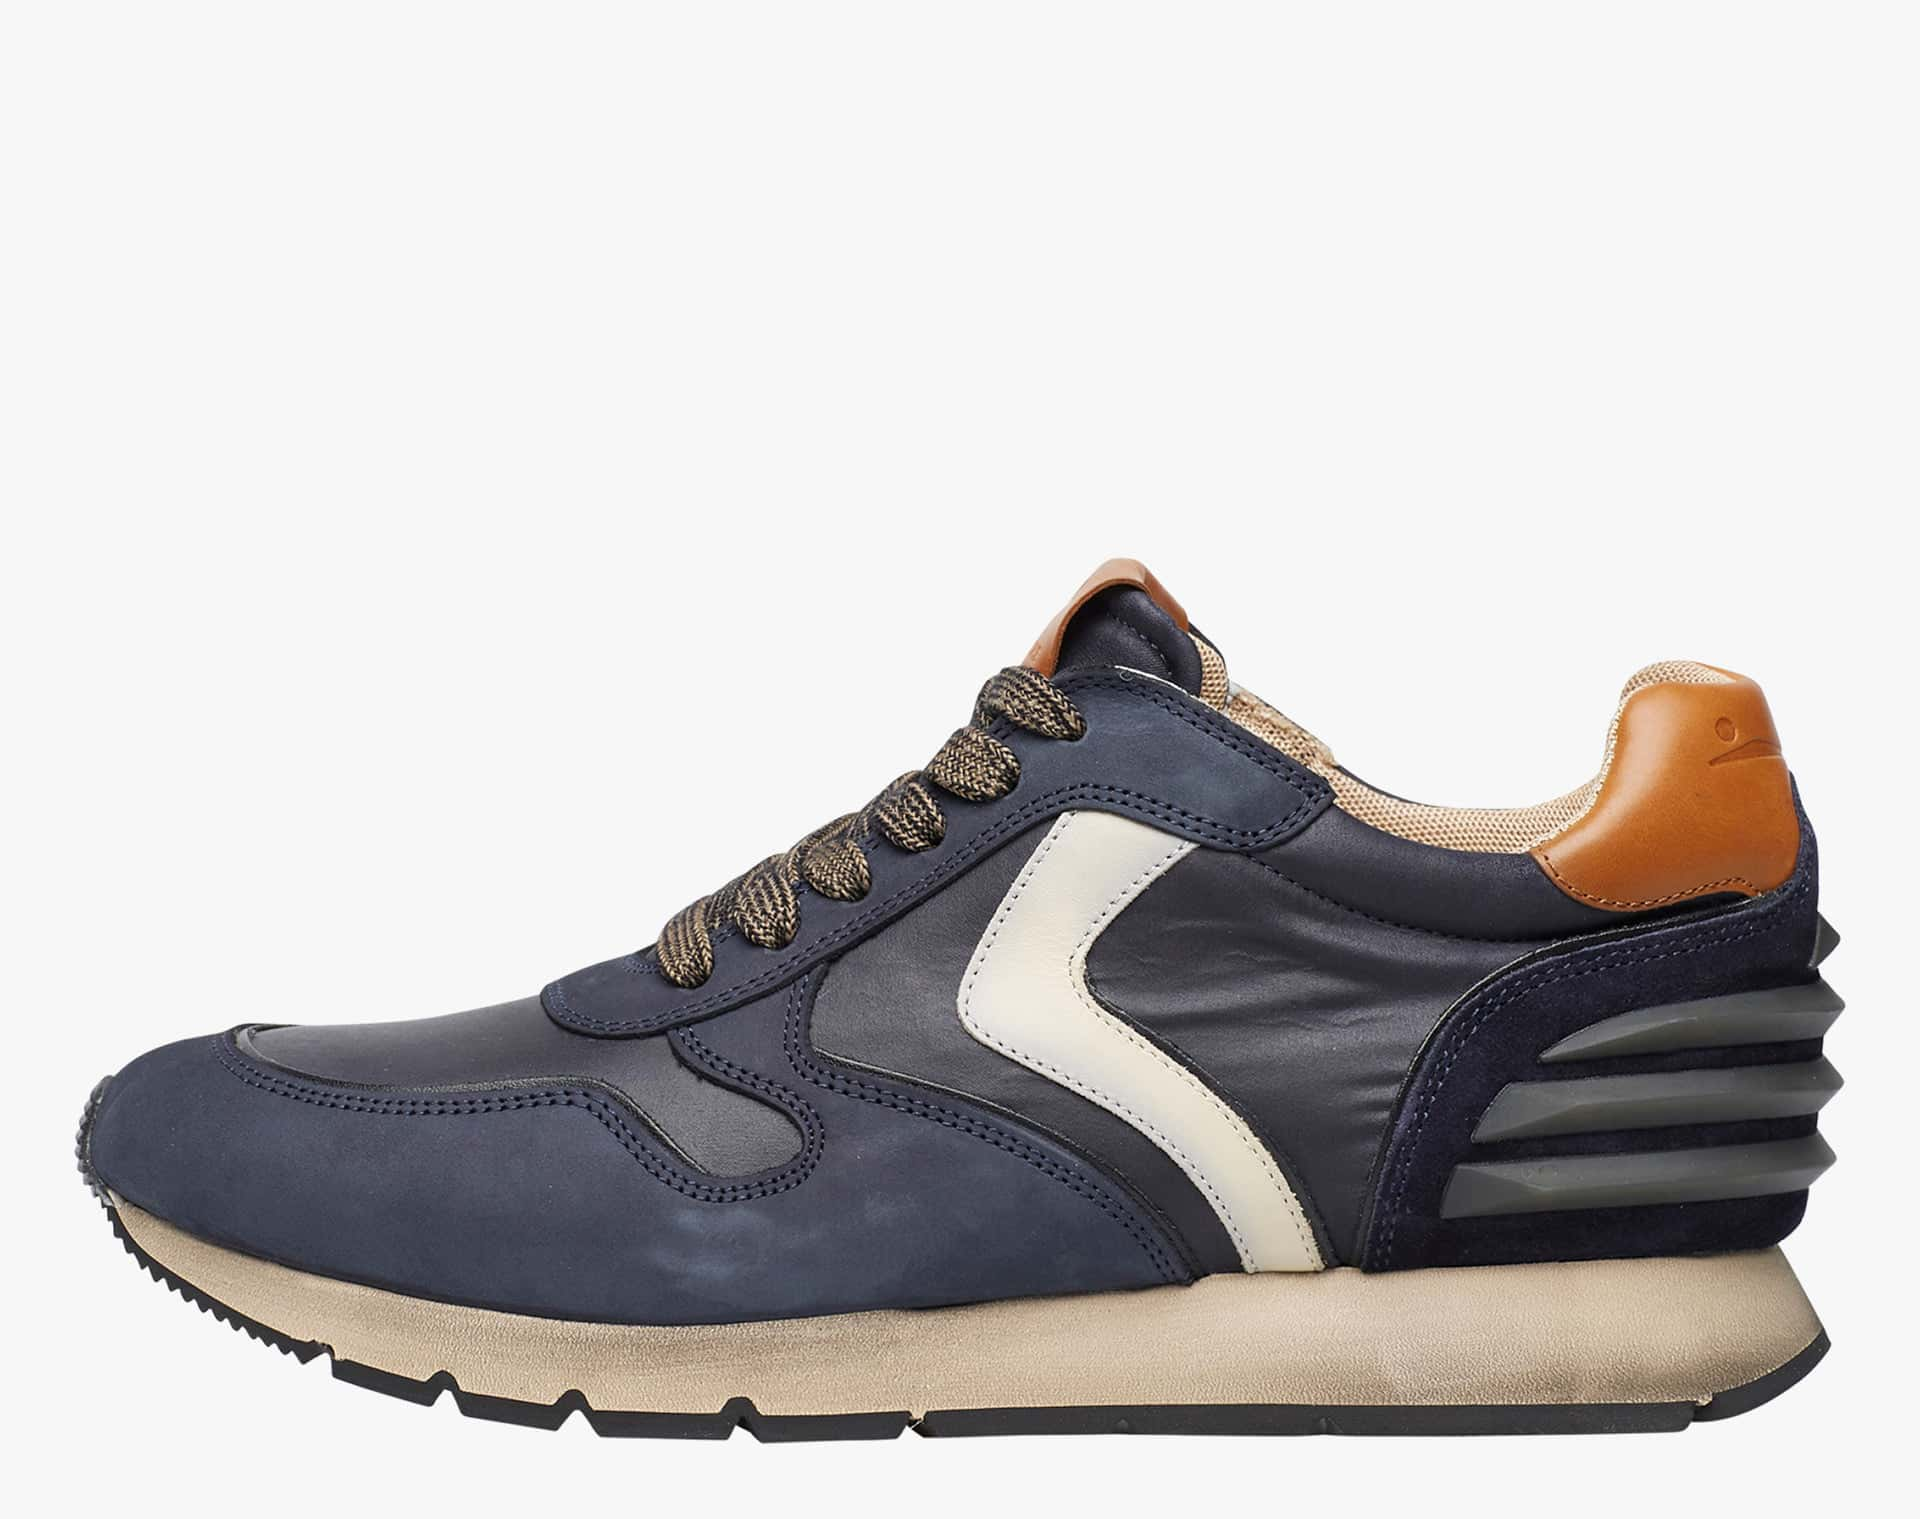 LIAM POWER - Sneaker in nabuk e nylon tecnico - Navy/Latte